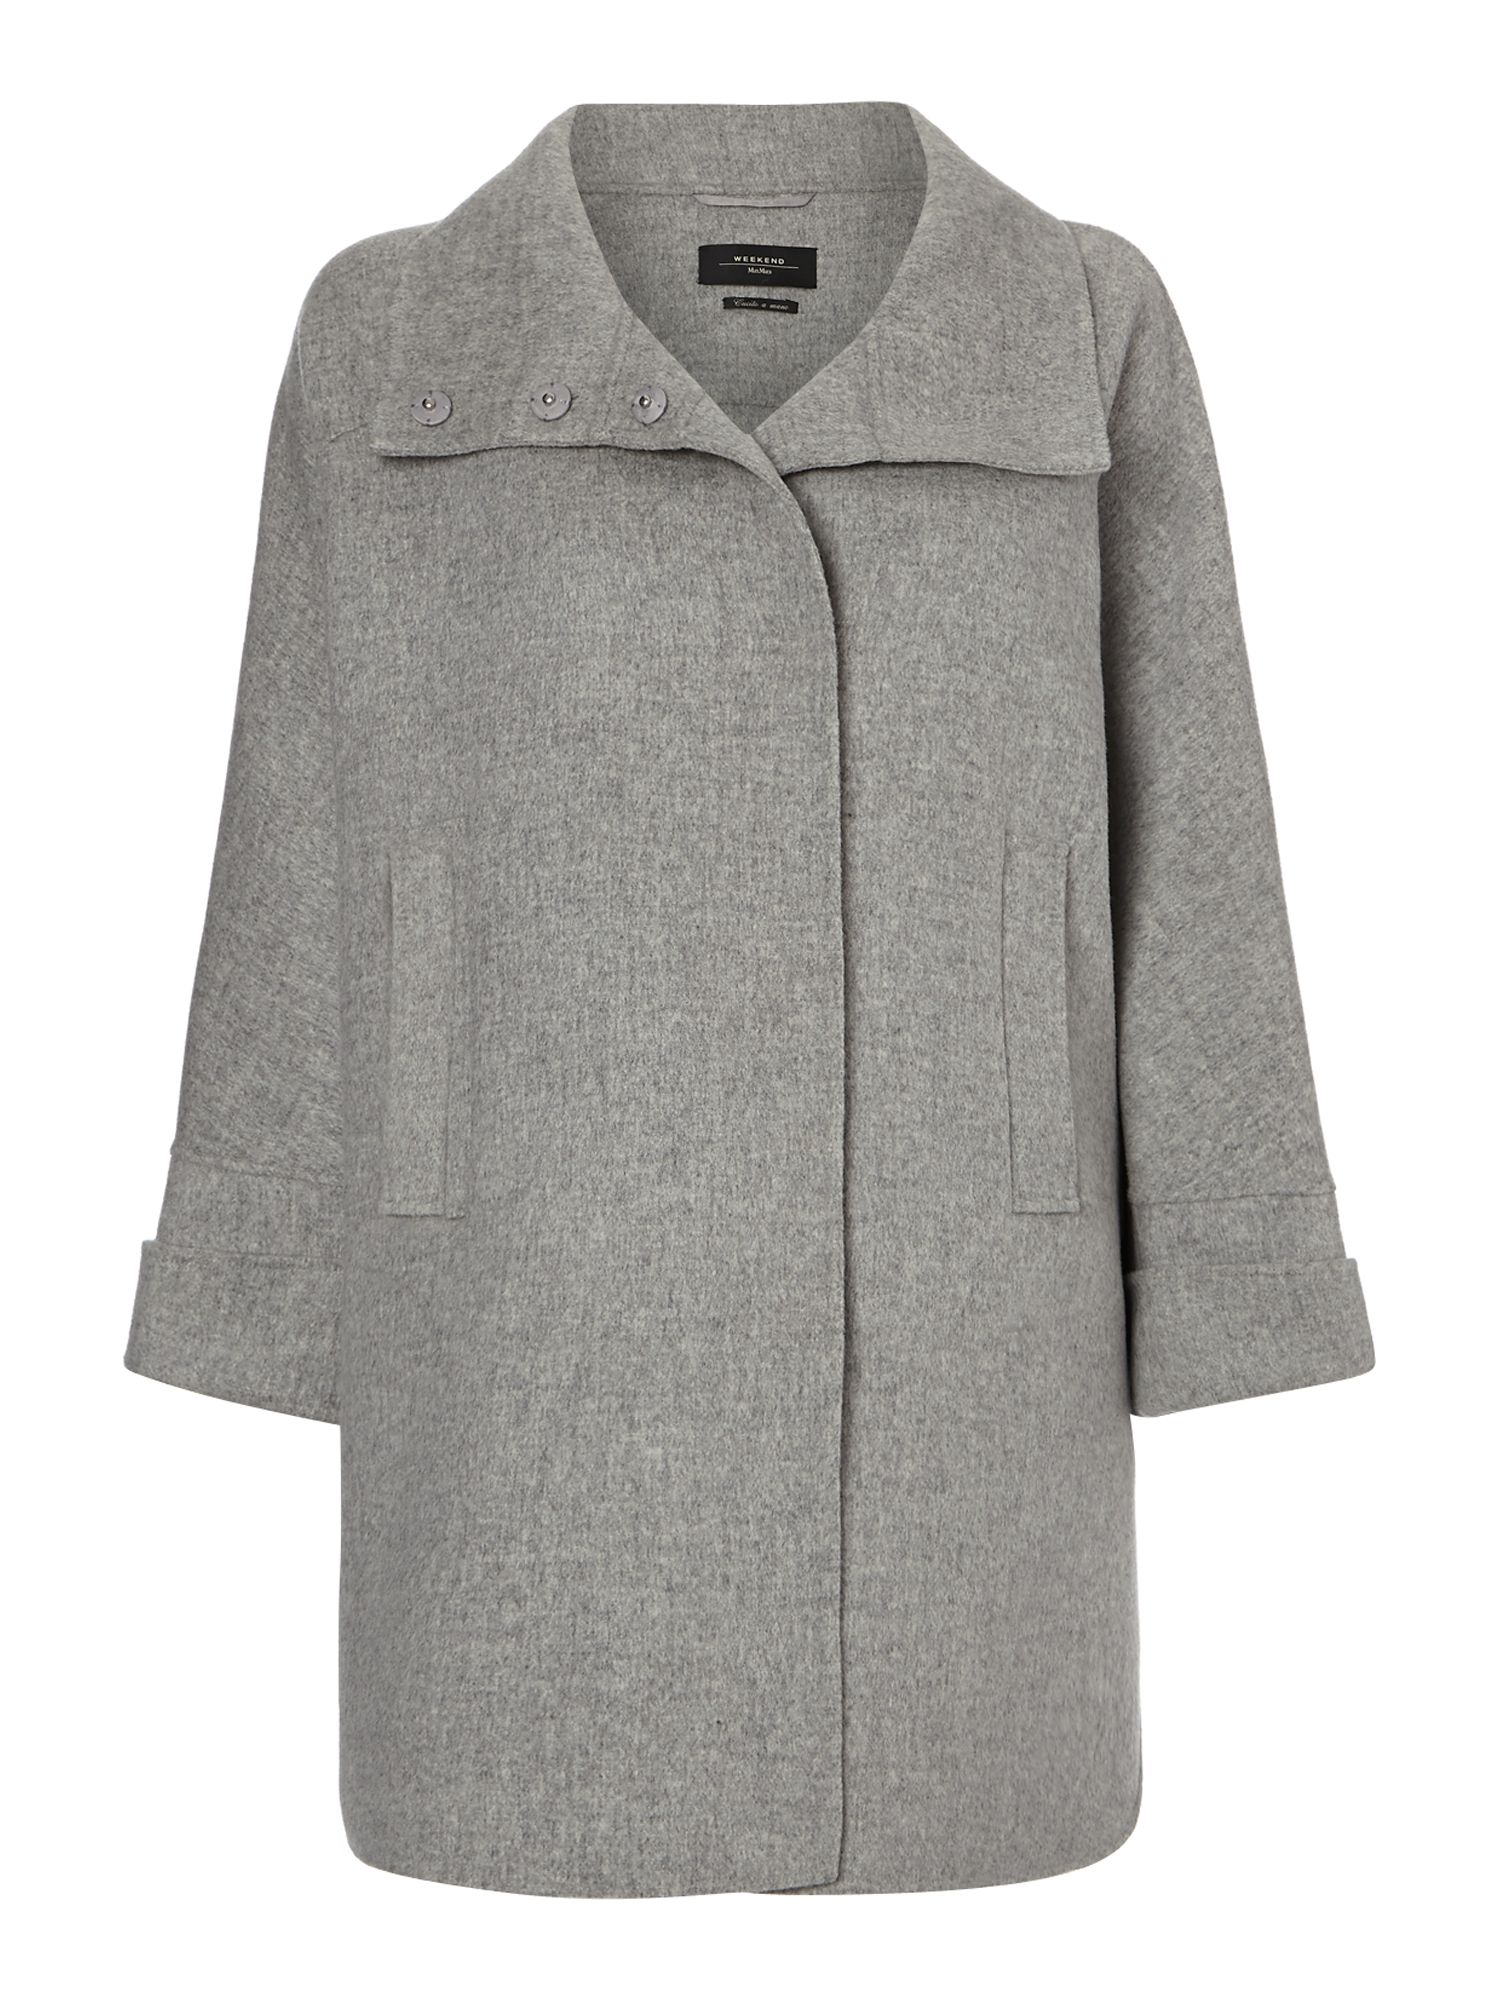 Beber double faced virgin wool coat